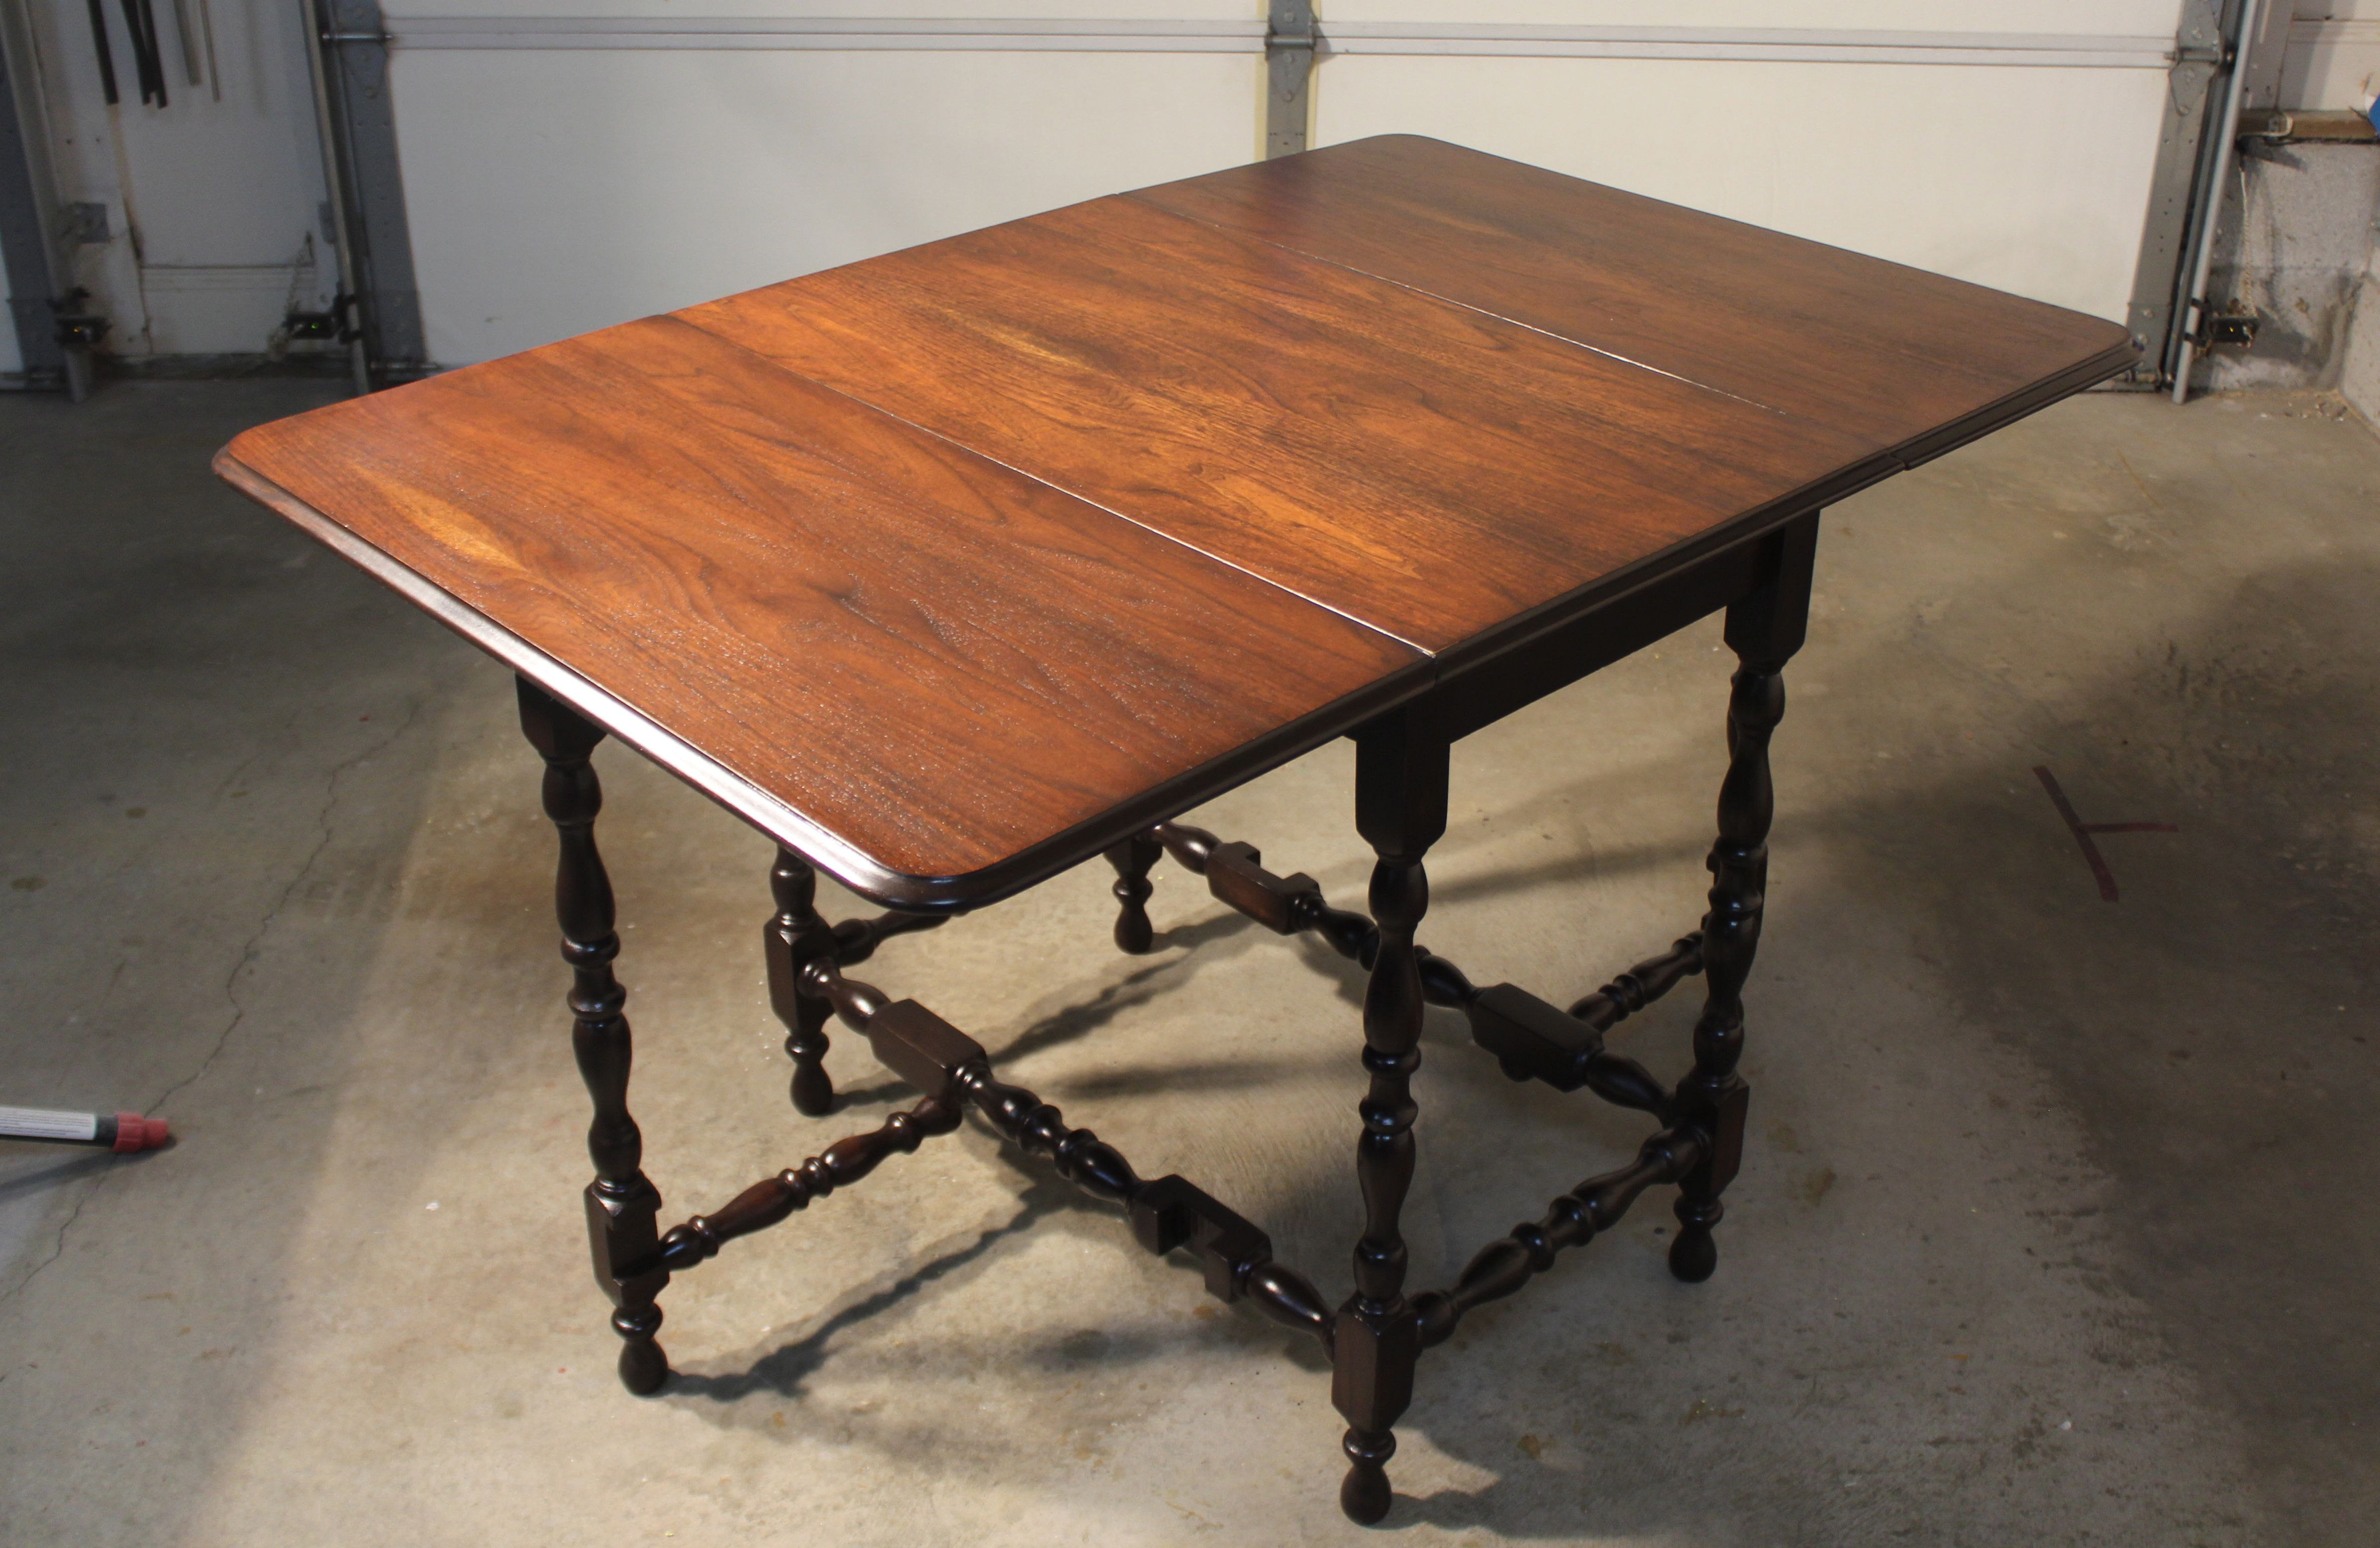 Antique Walnut Gate Leg Table This Table Top Finished Out